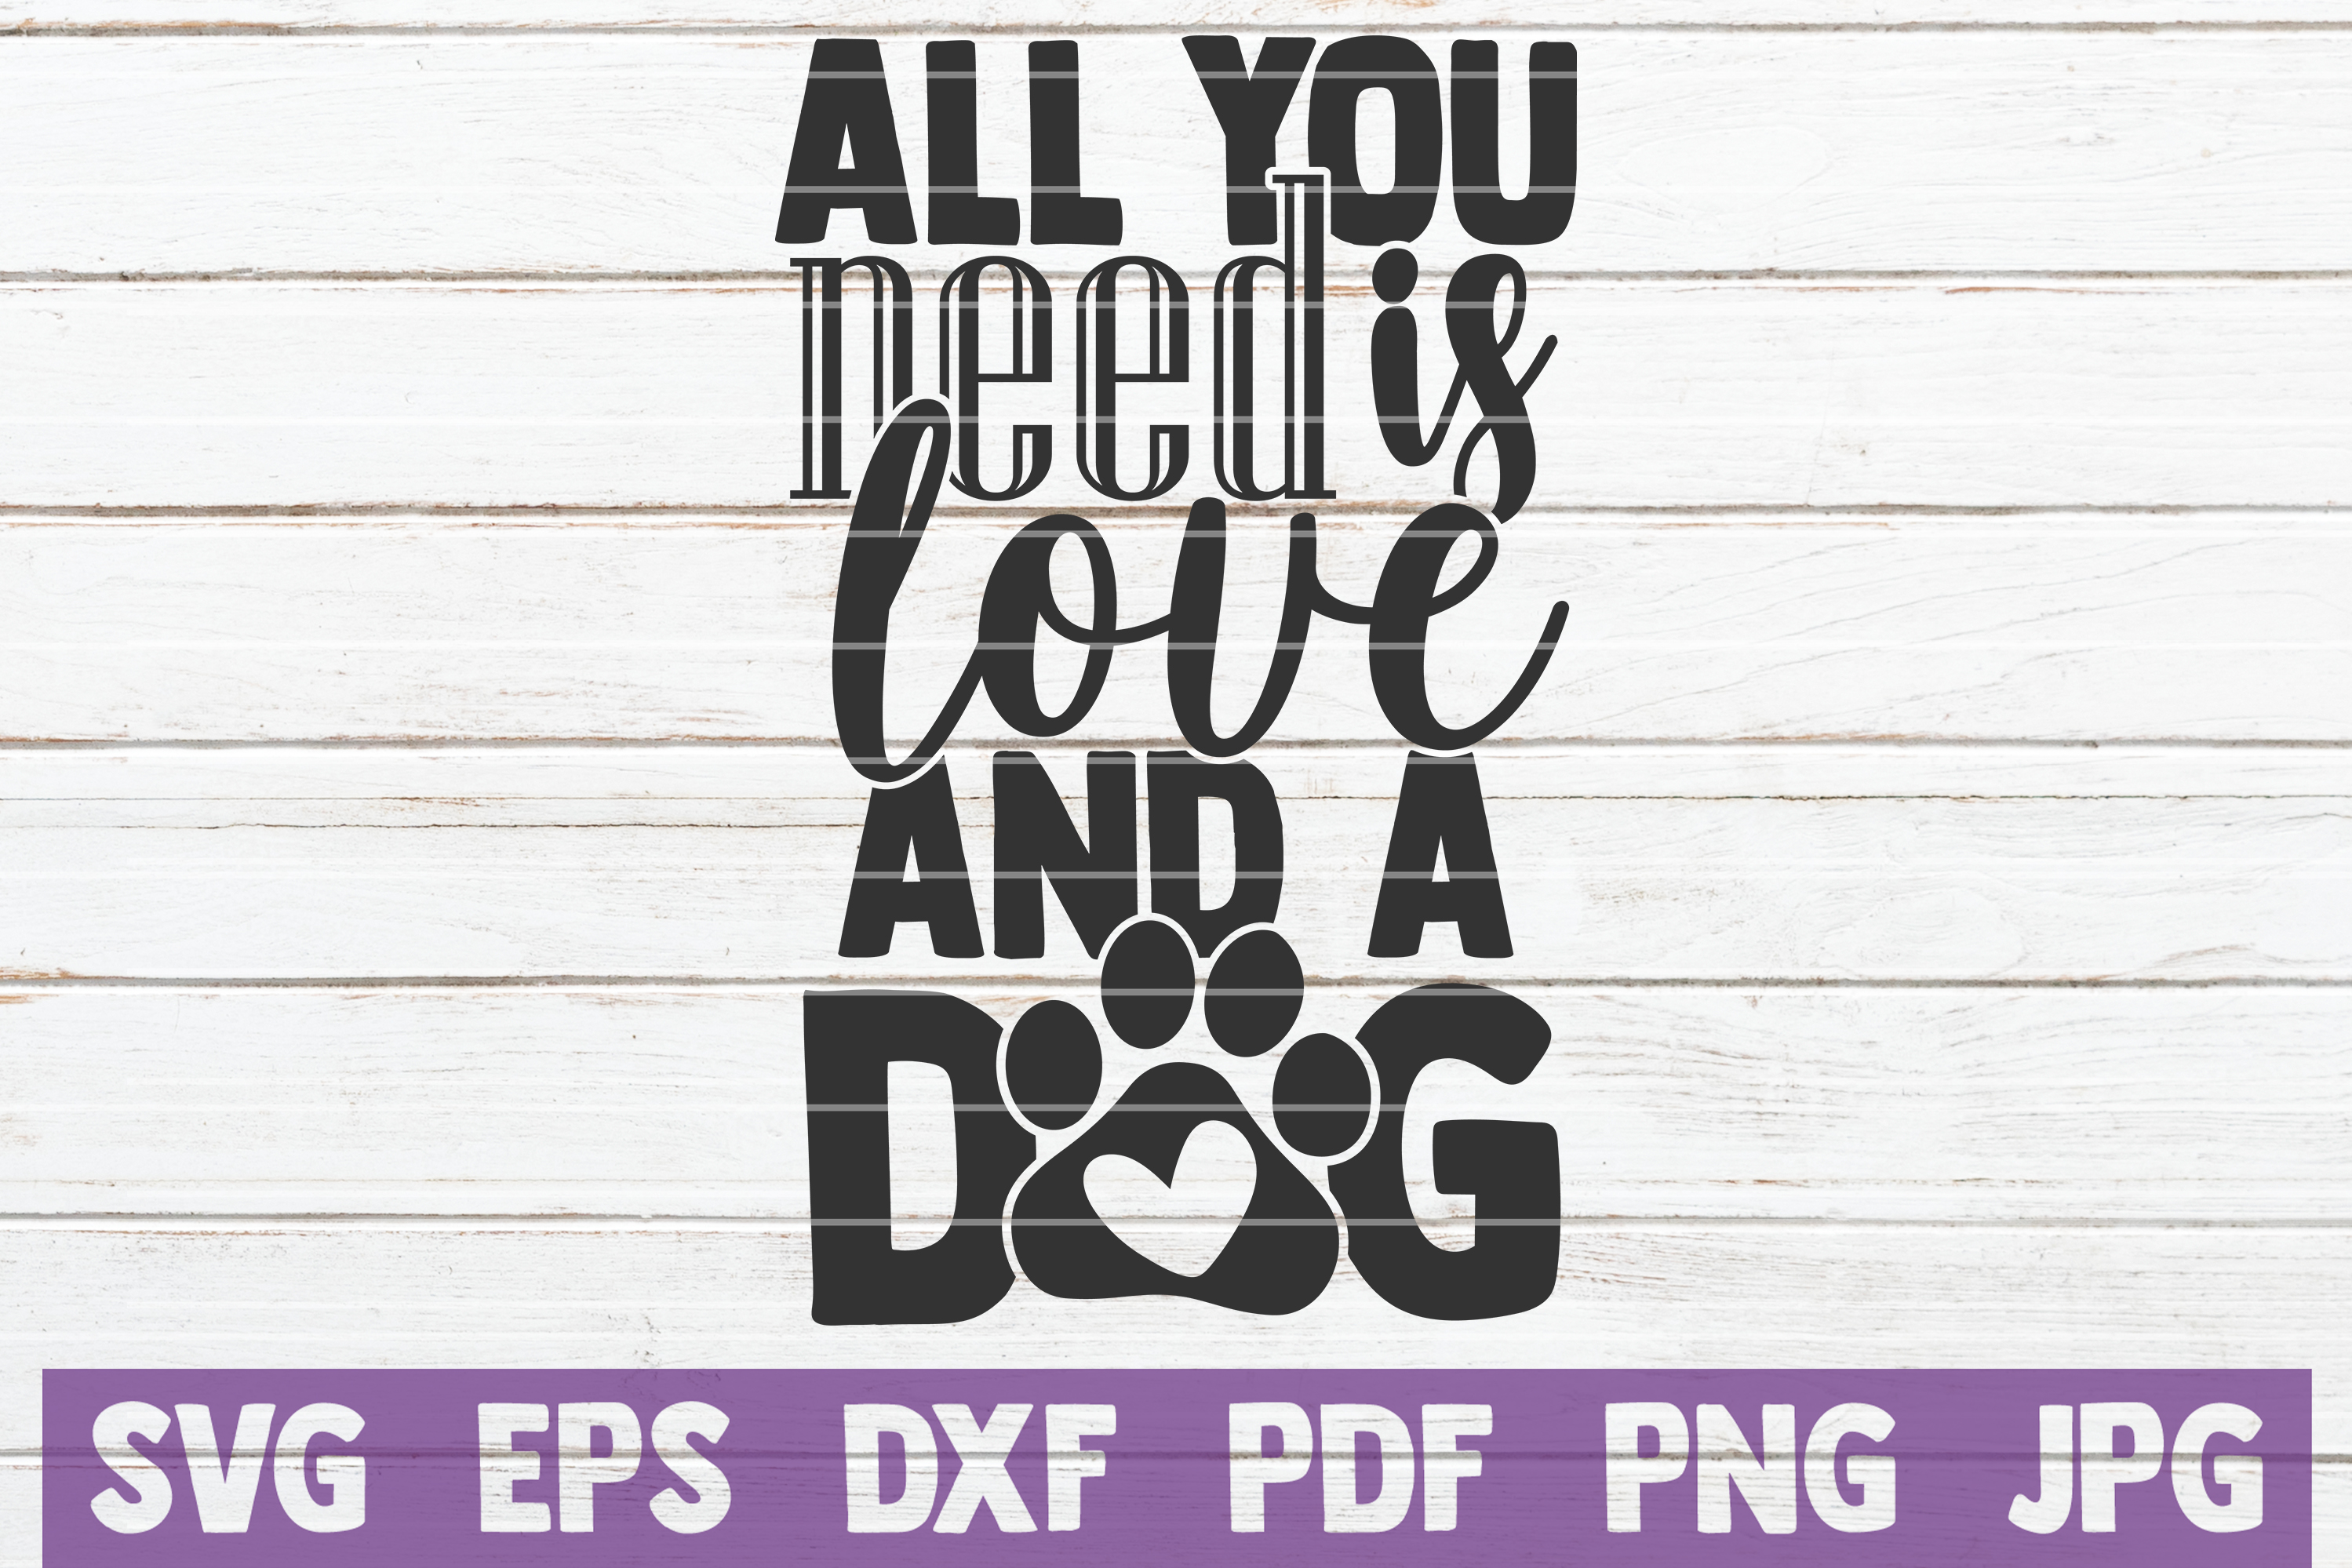 Download Free All You Need Is Love And A Dog Graphic By Mintymarshmallows for Cricut Explore, Silhouette and other cutting machines.